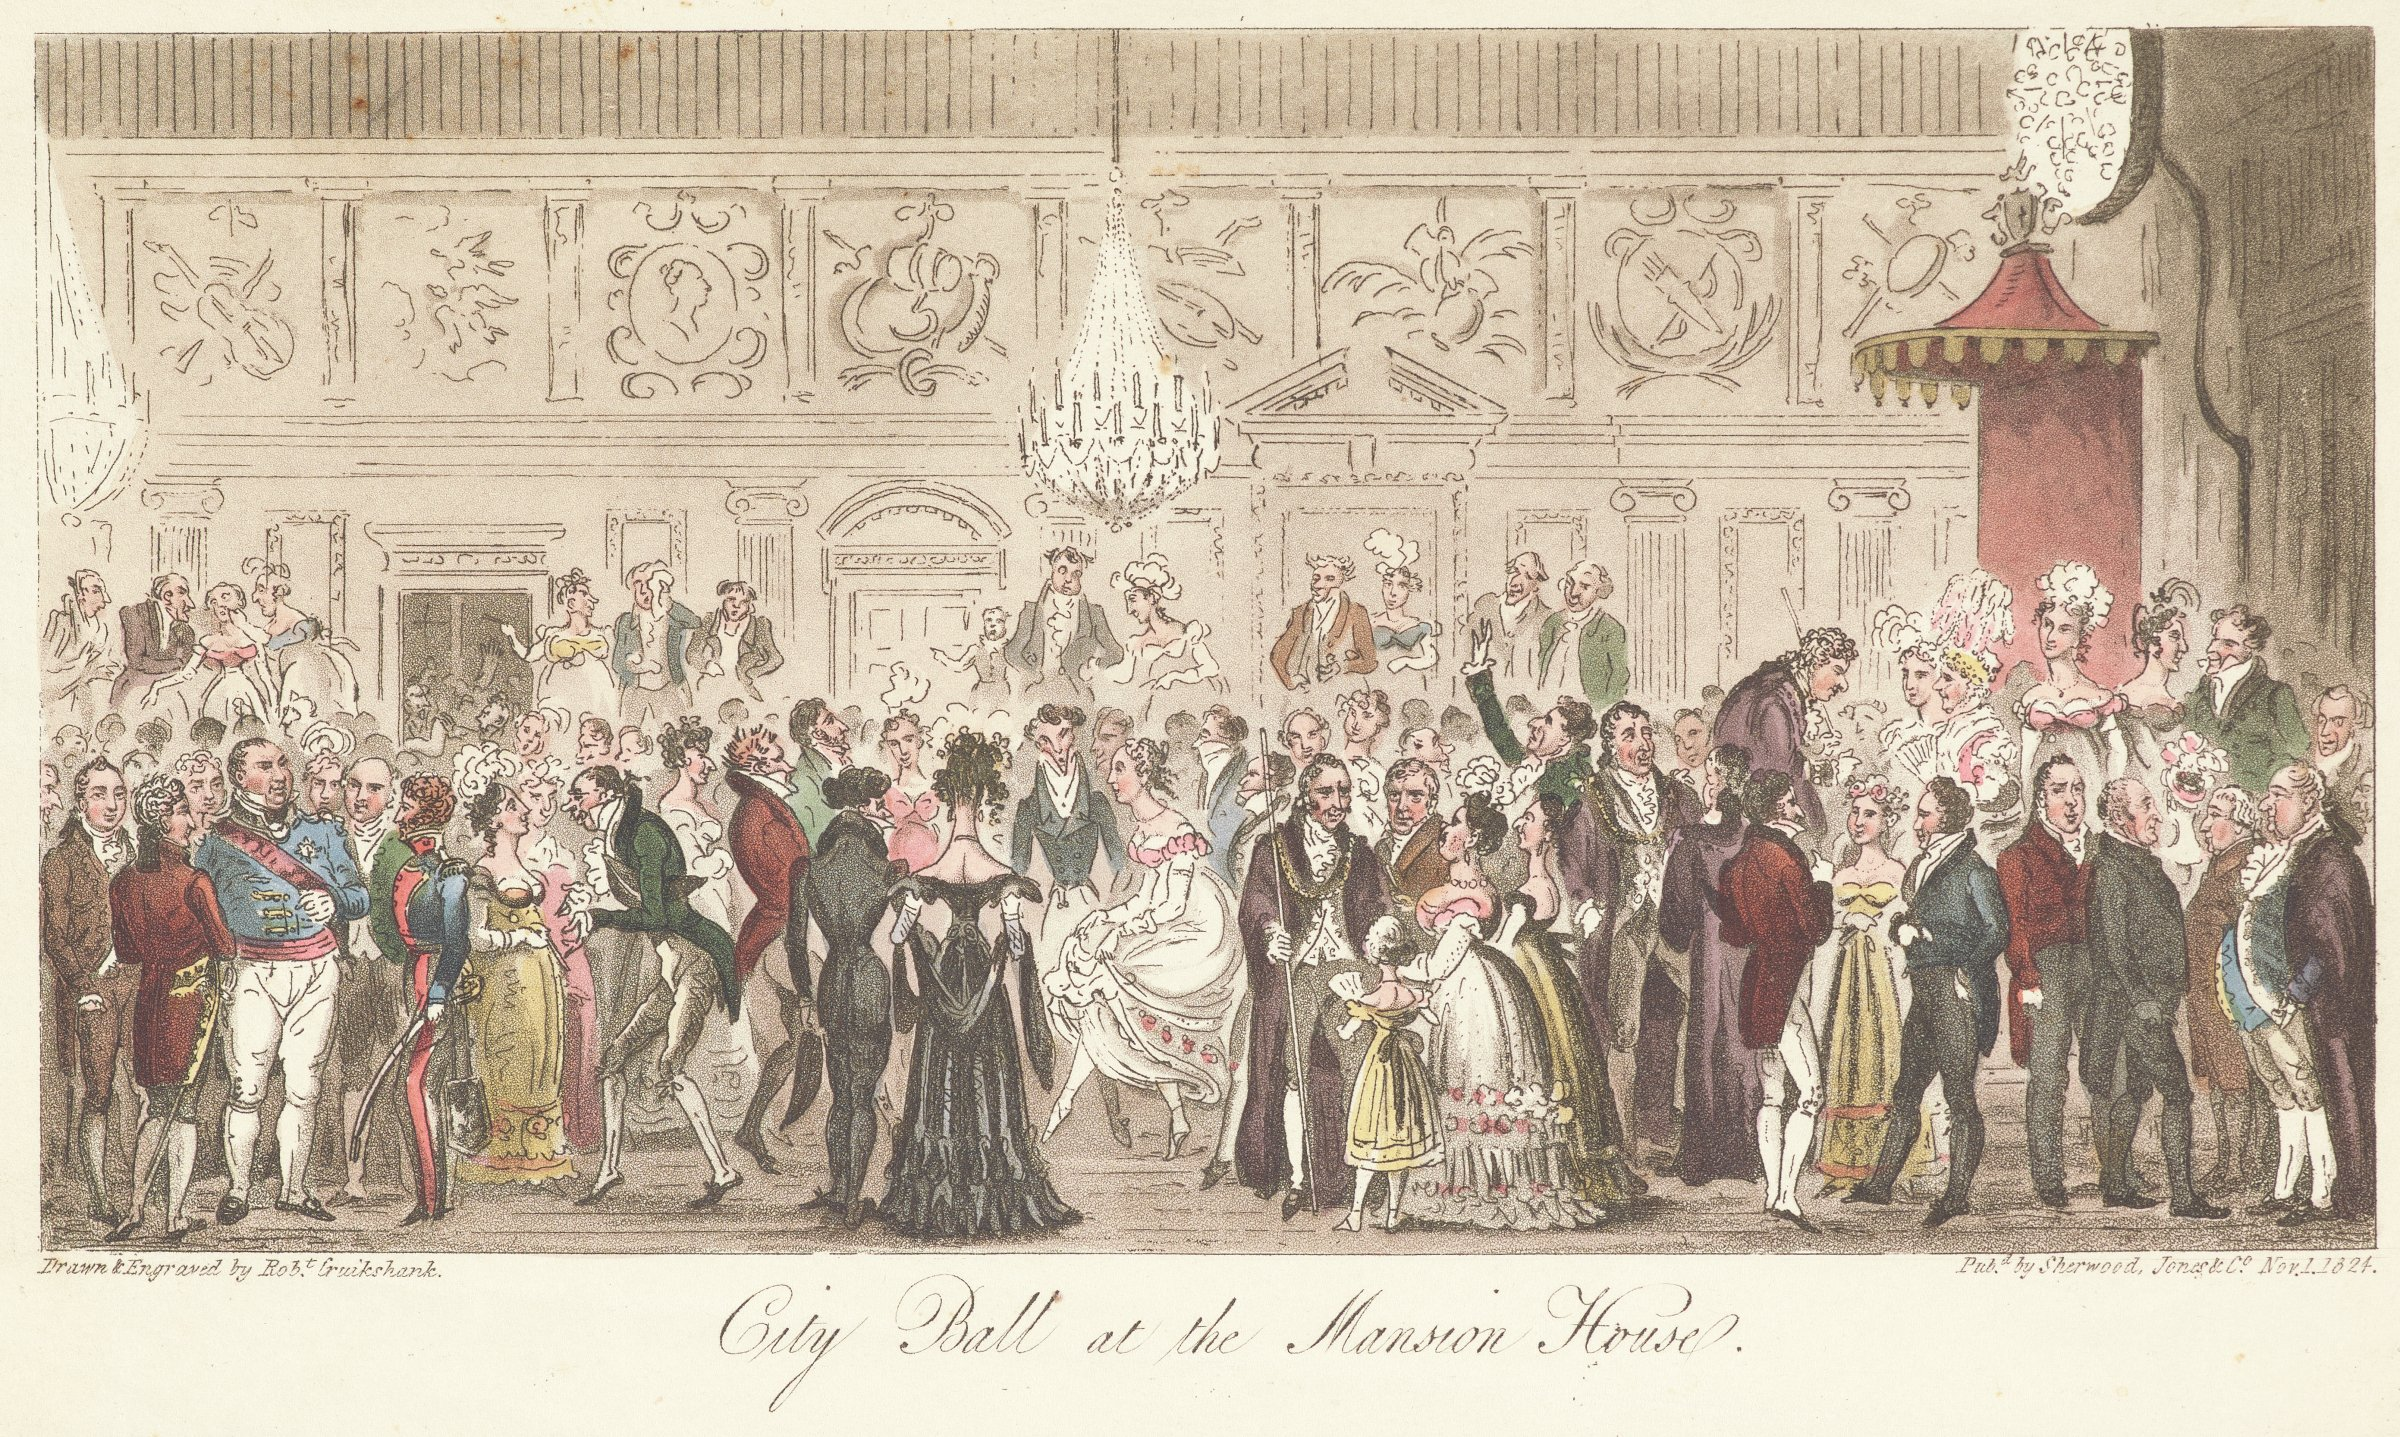 Scene of ladies and gentlemen at a ball in an elegant interior with chandeliers and a royal canopy on the right.